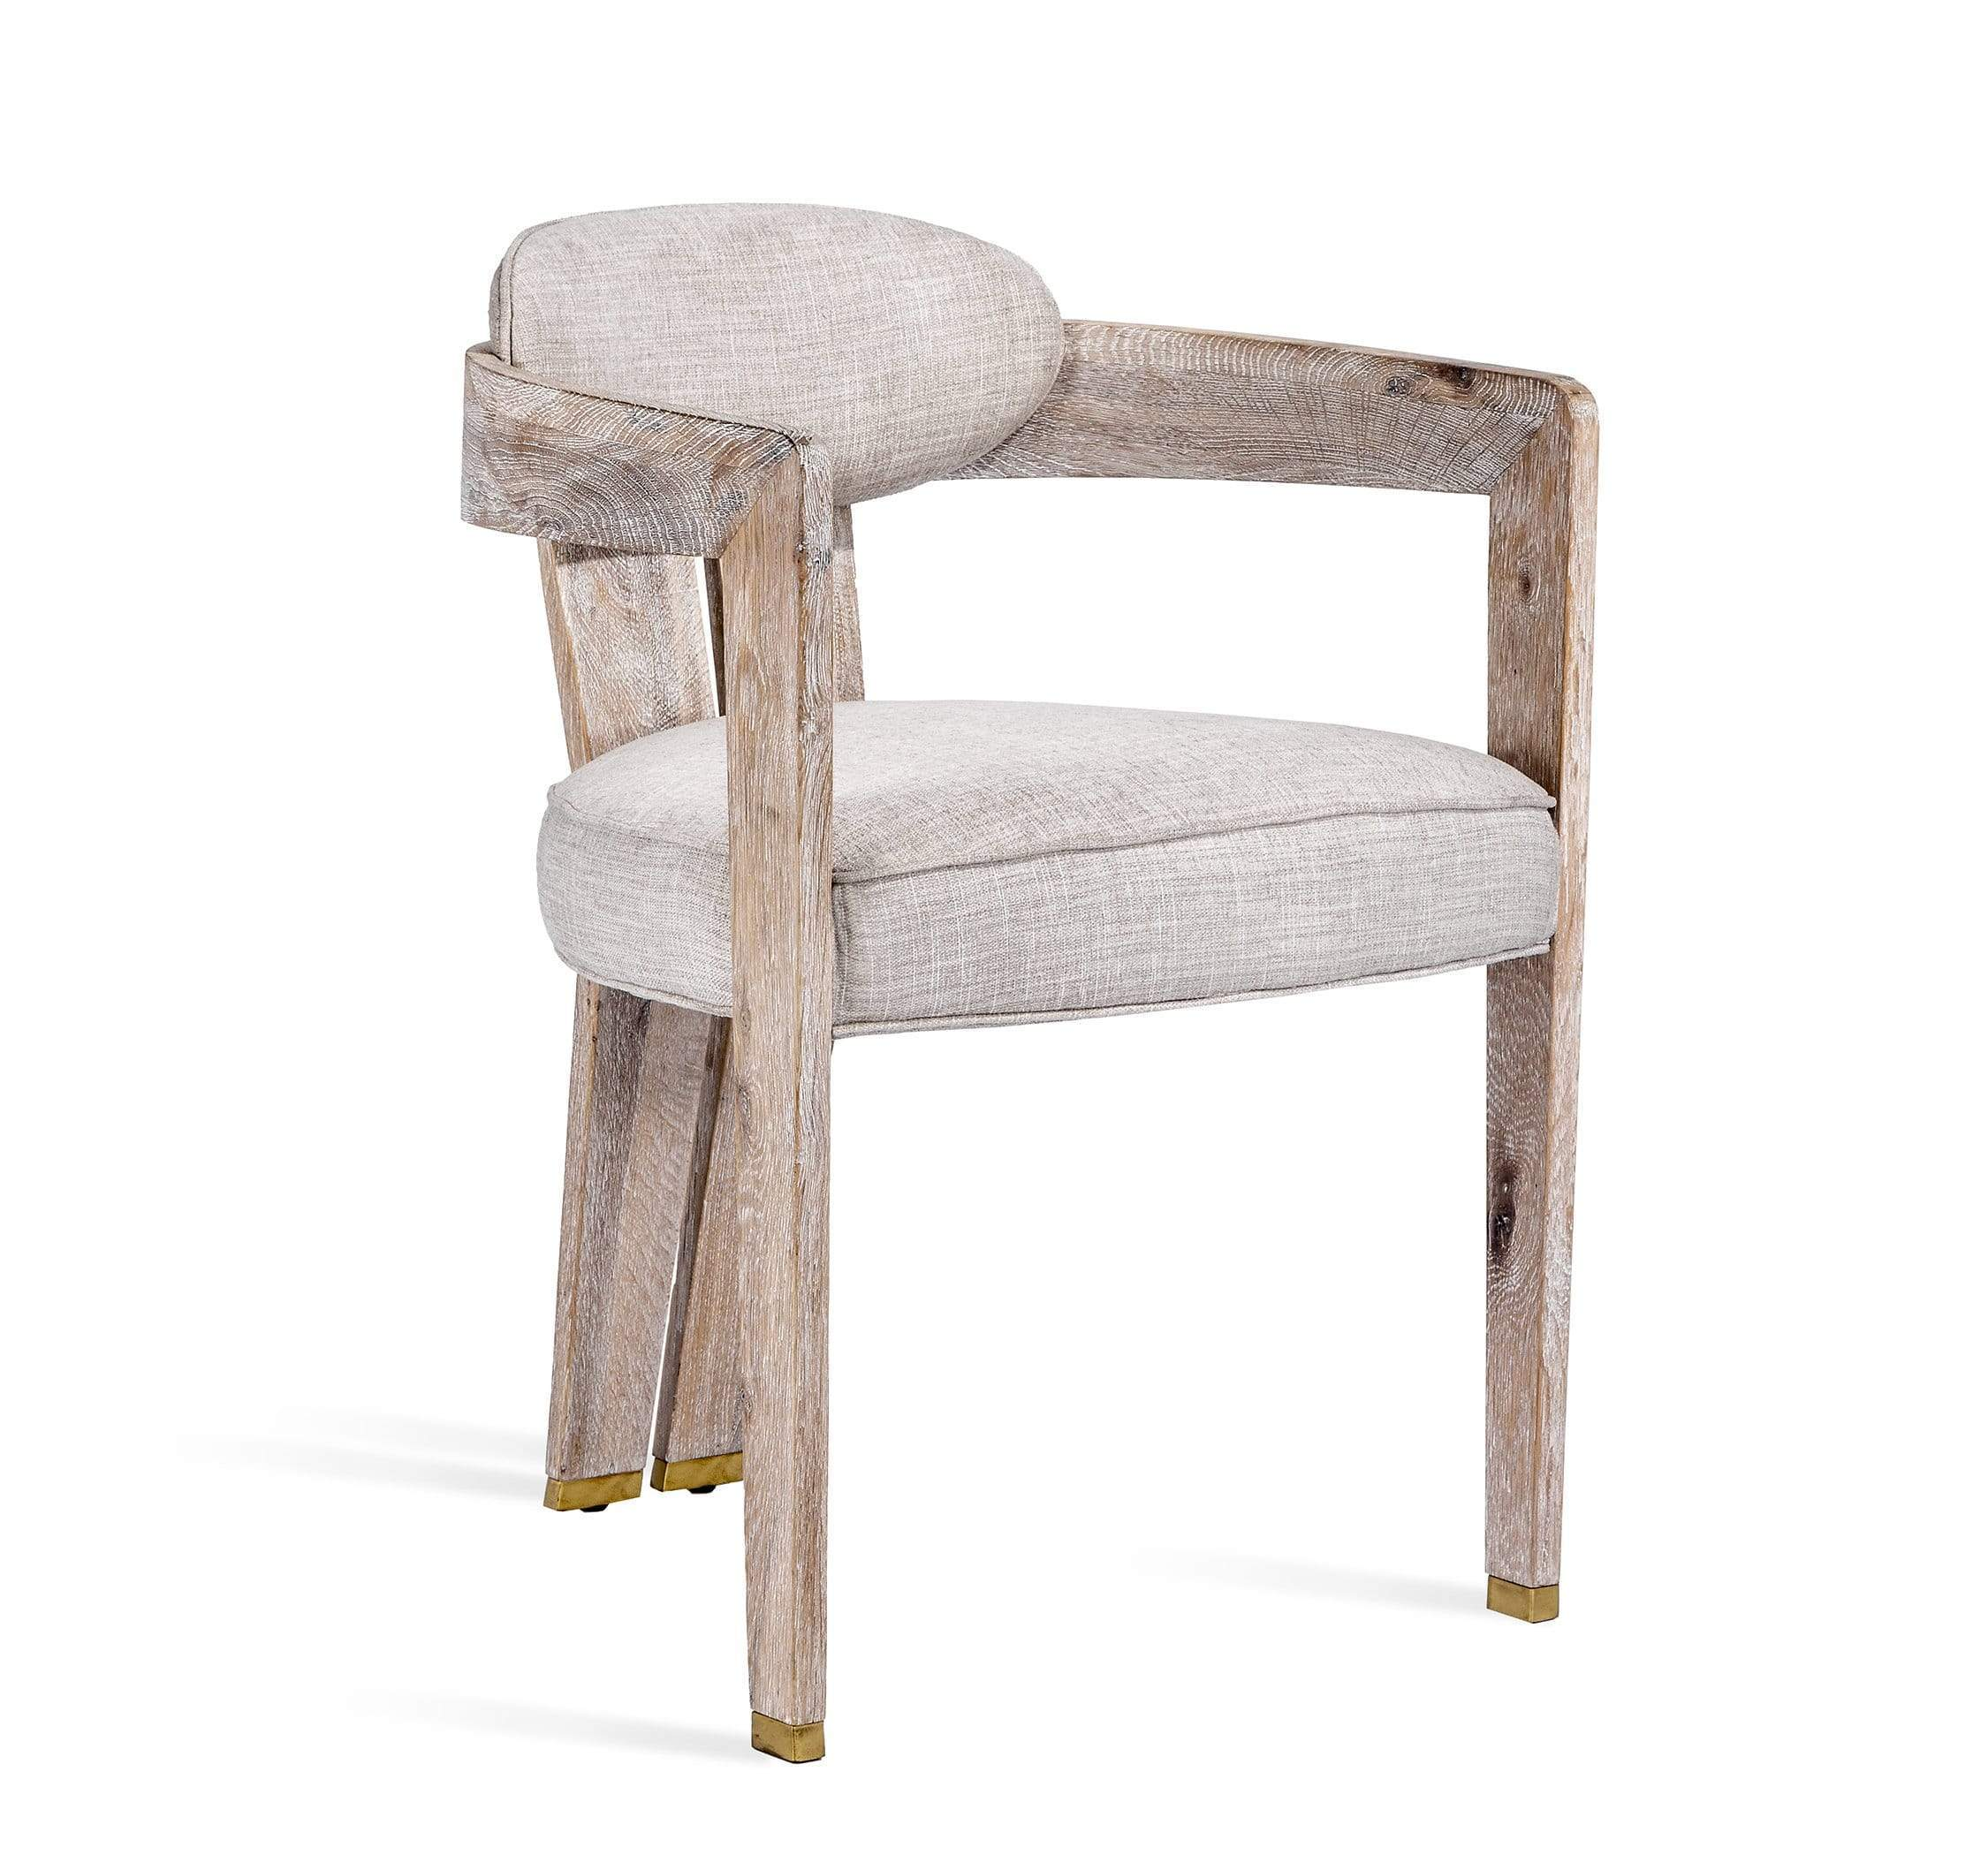 Image of Maryl II Dining Chair in Cream Linen